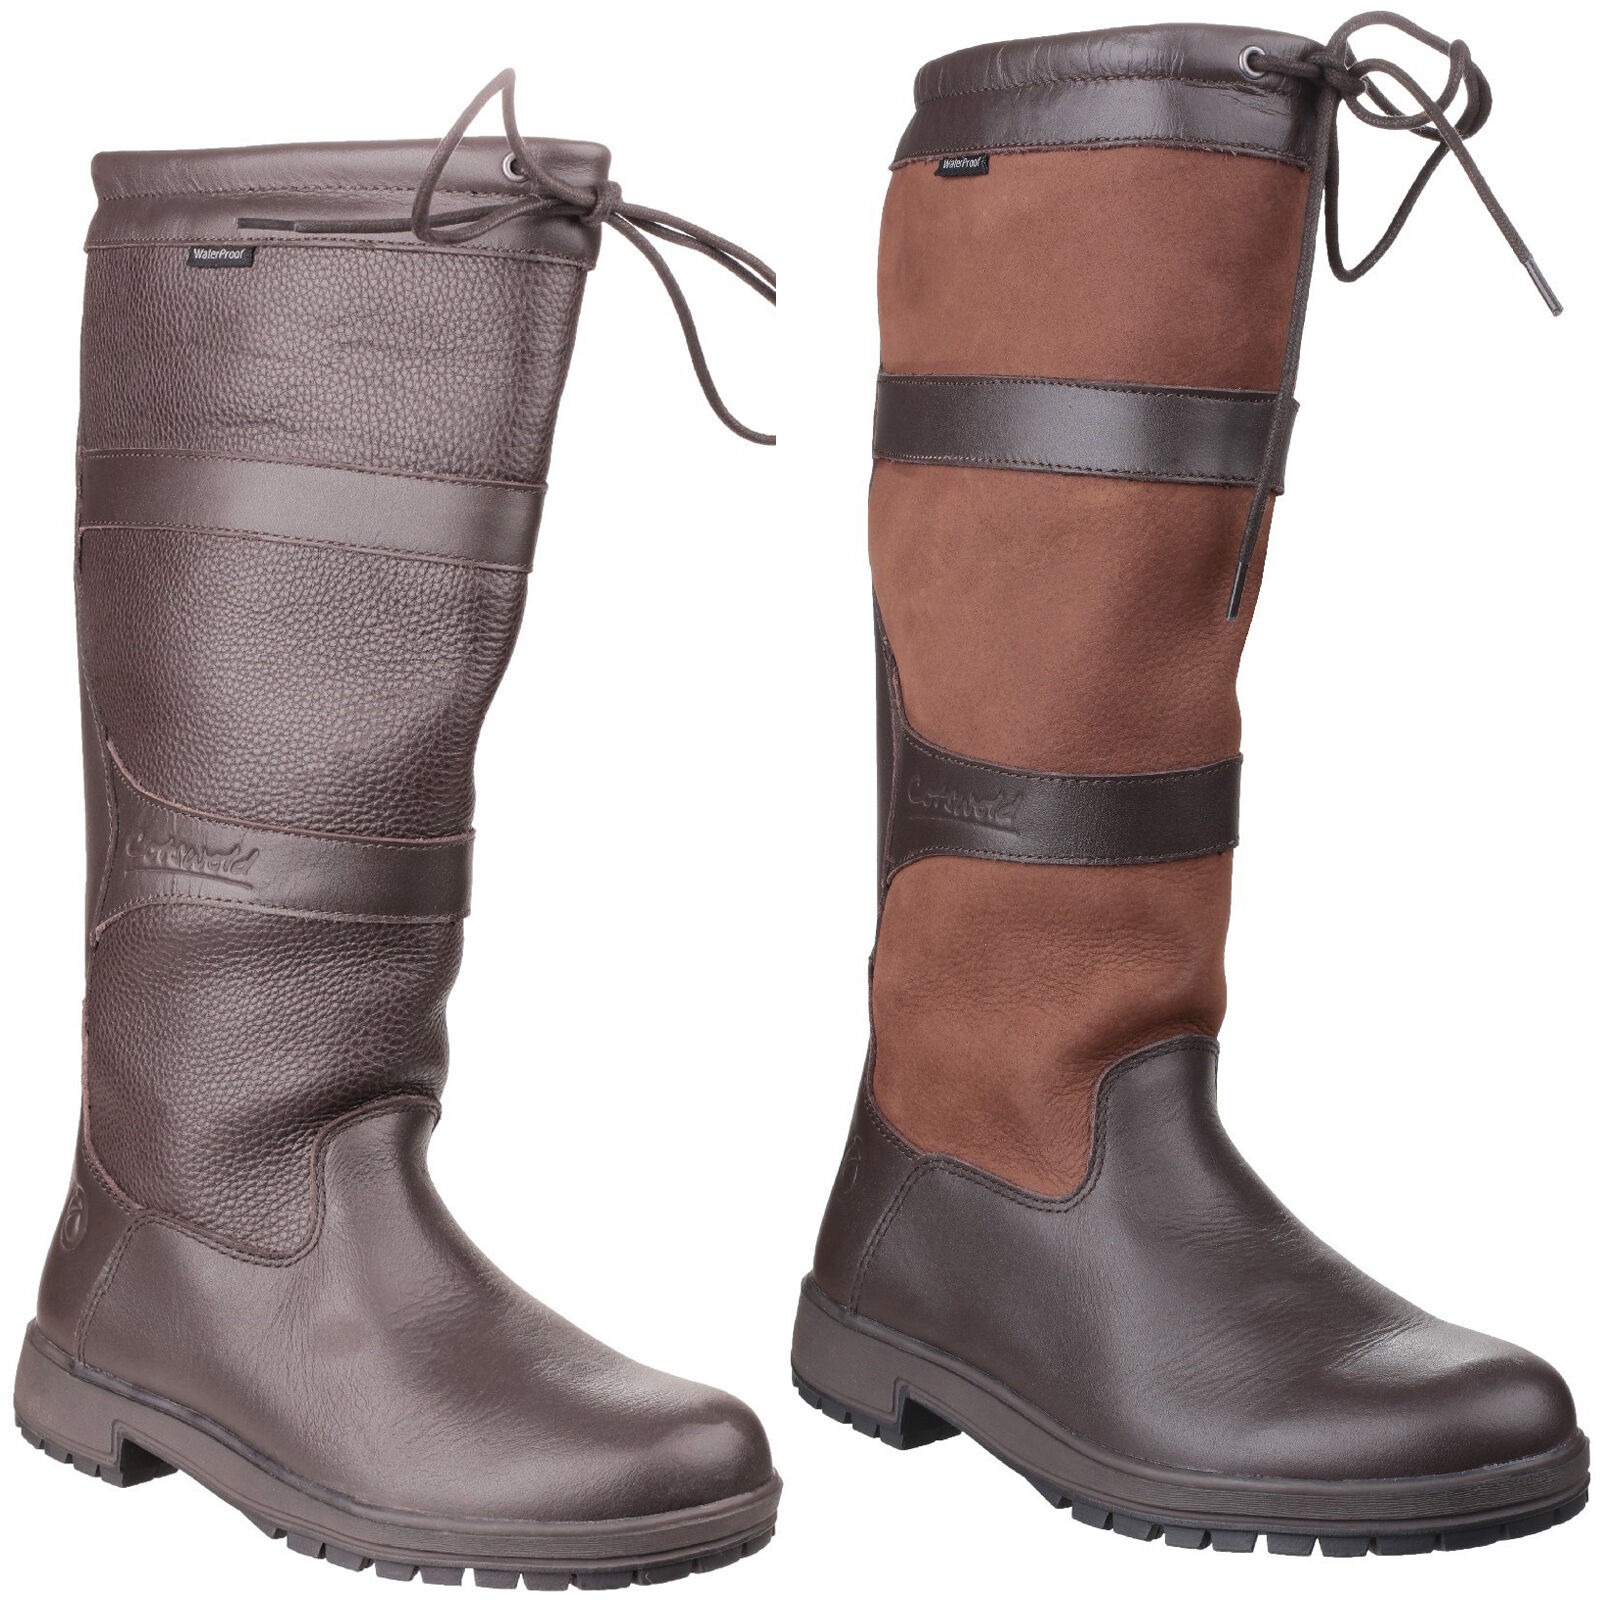 Cotswold Beaumont Impermeable Botas mujer Tirar Wellingtons Wellies para mujer Botas UK4-8 b00f56